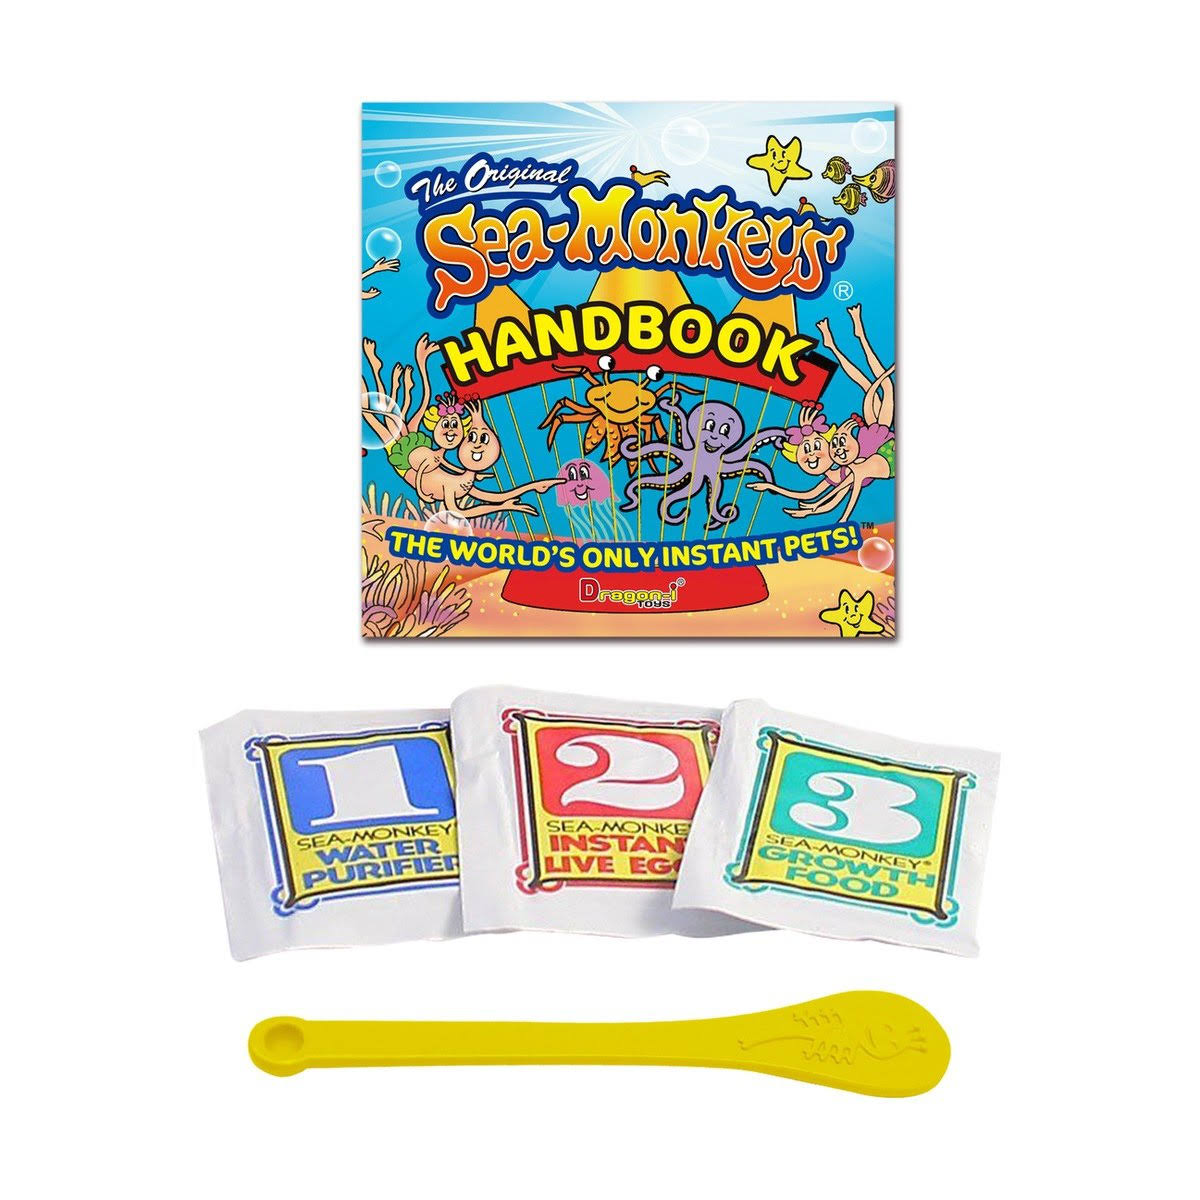 Amazing Live Sea Monkeys Original Instant Life Pack